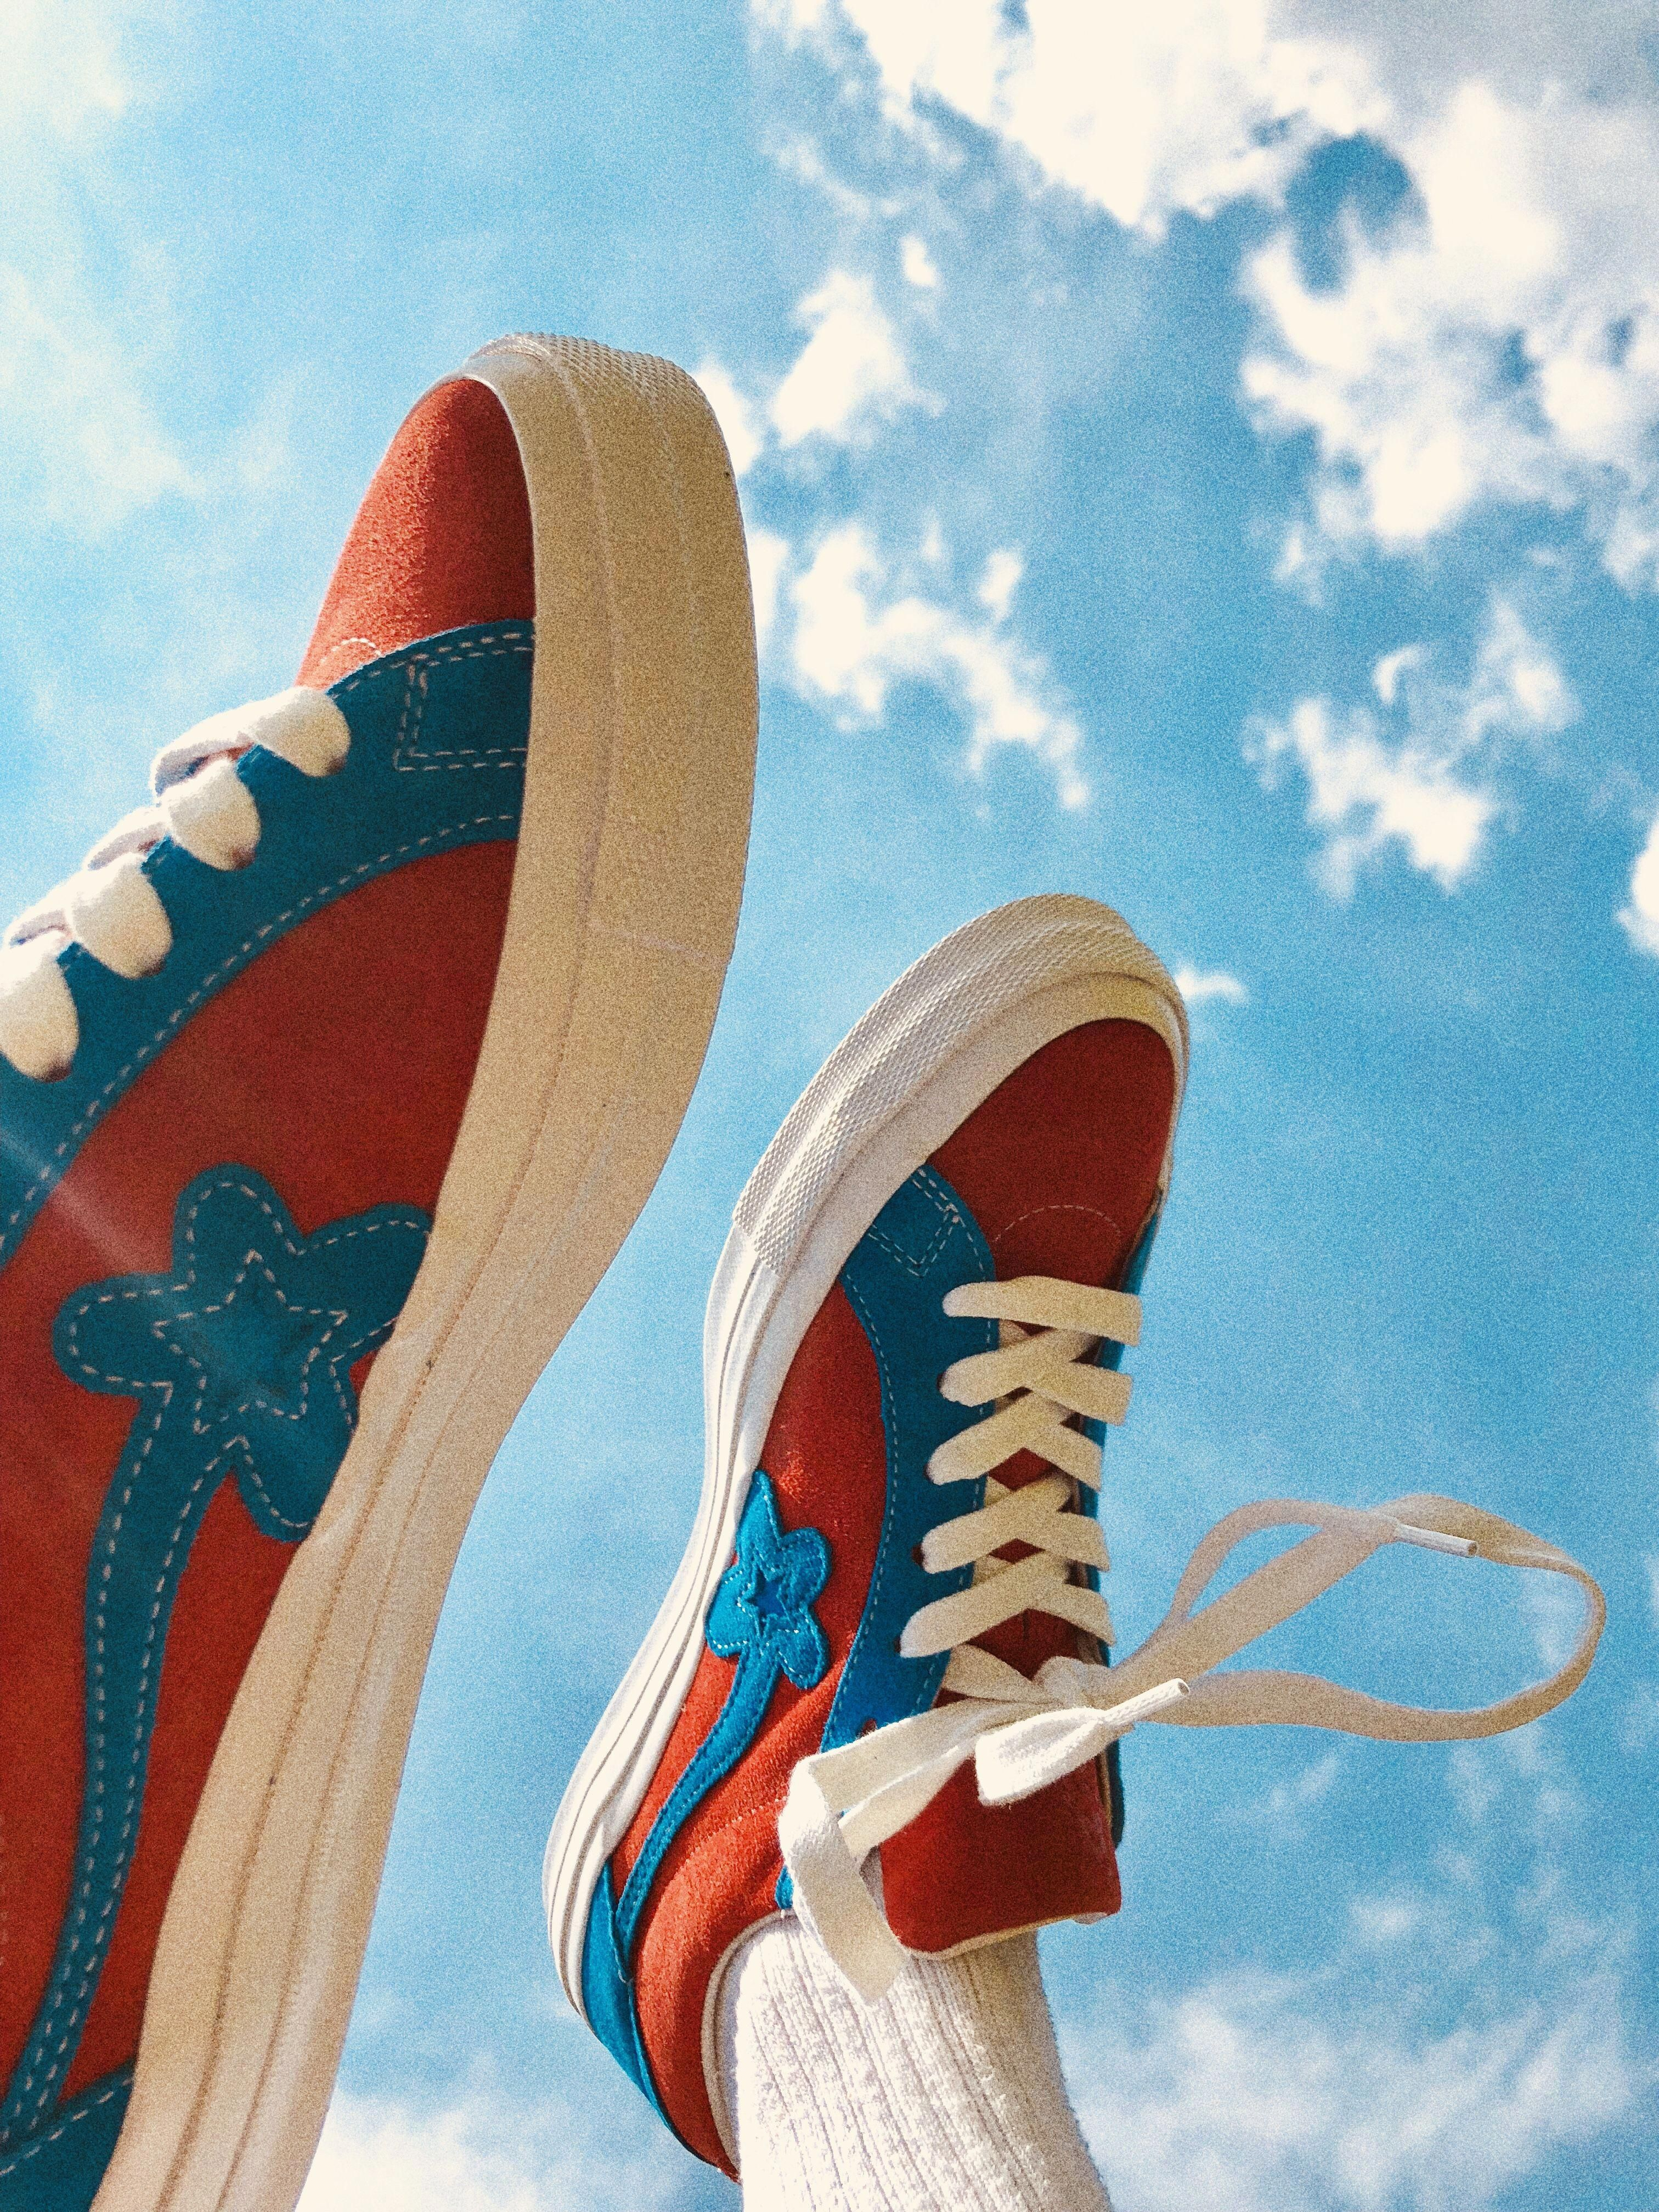 Blue and Red Golf le Fleur #golfshoes